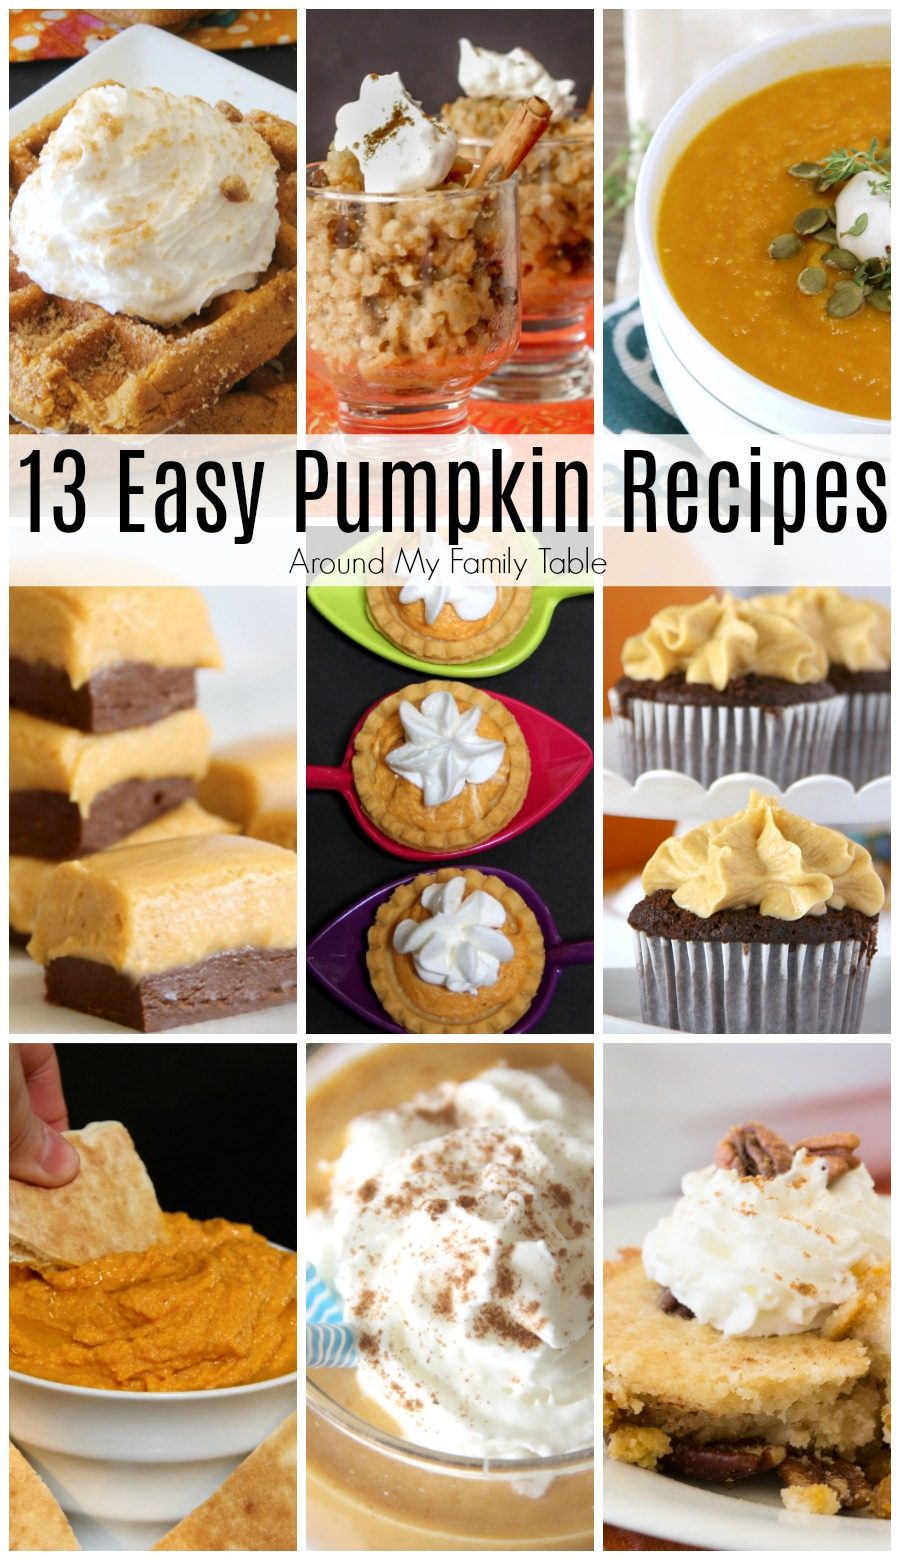 Fall is pumpkin season!! Looking for a way to use more pumpkin this autumn? Check out these easy pumpkin recipes that will blow your mind.